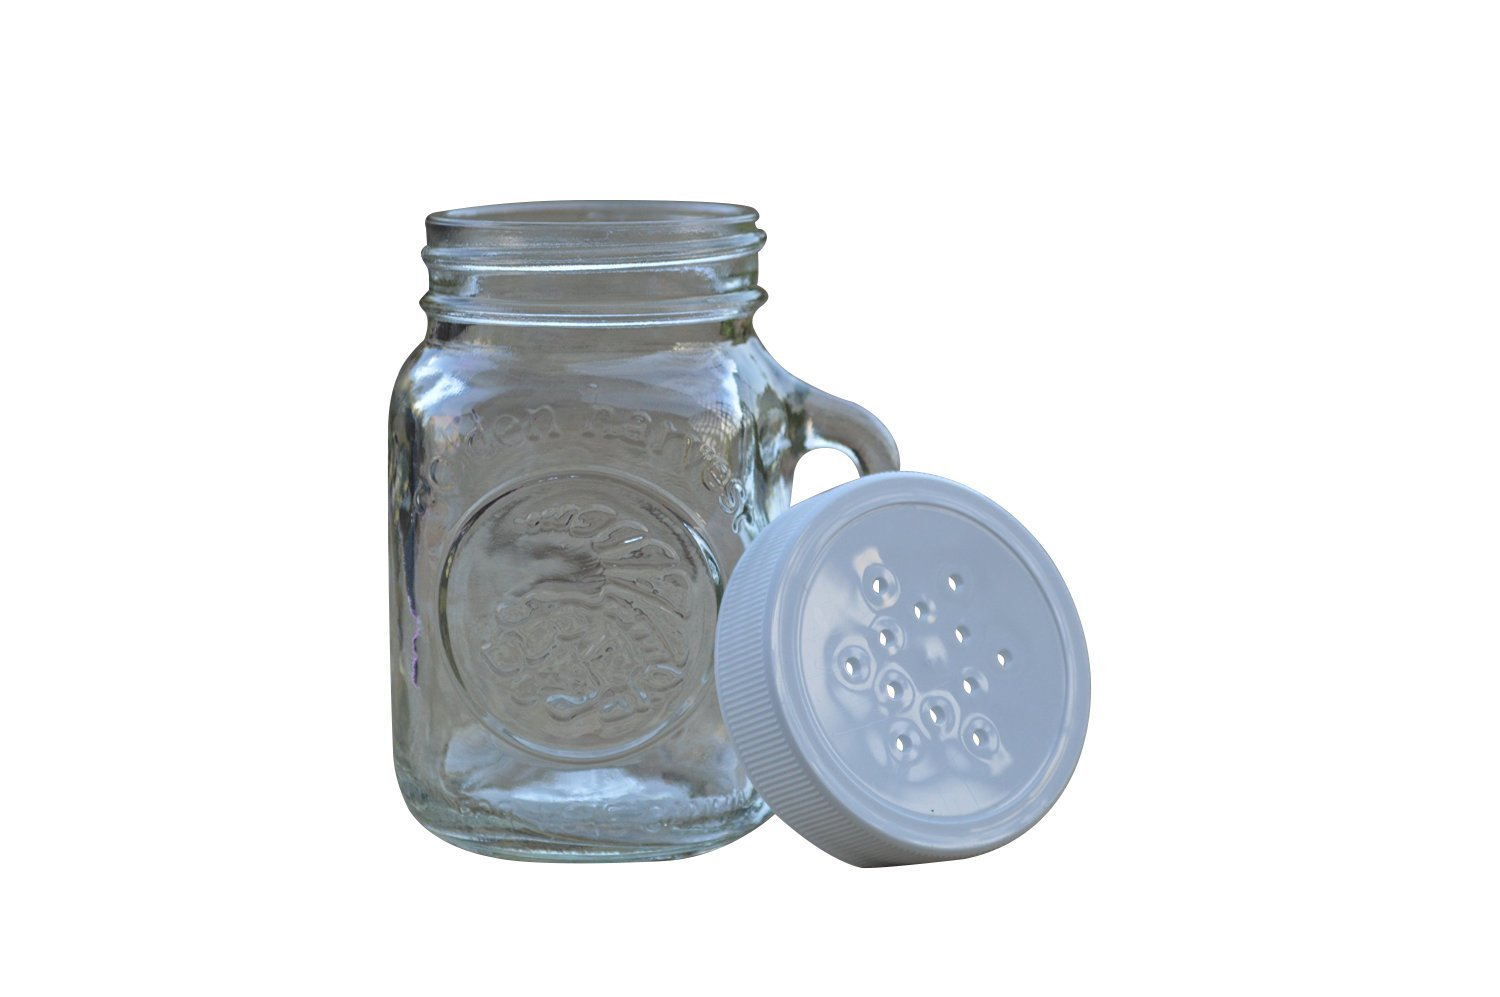 Golden Harvest, Ball Mason Jar Glass Salt and Pepper Shakers (Clear, Set of 2) by